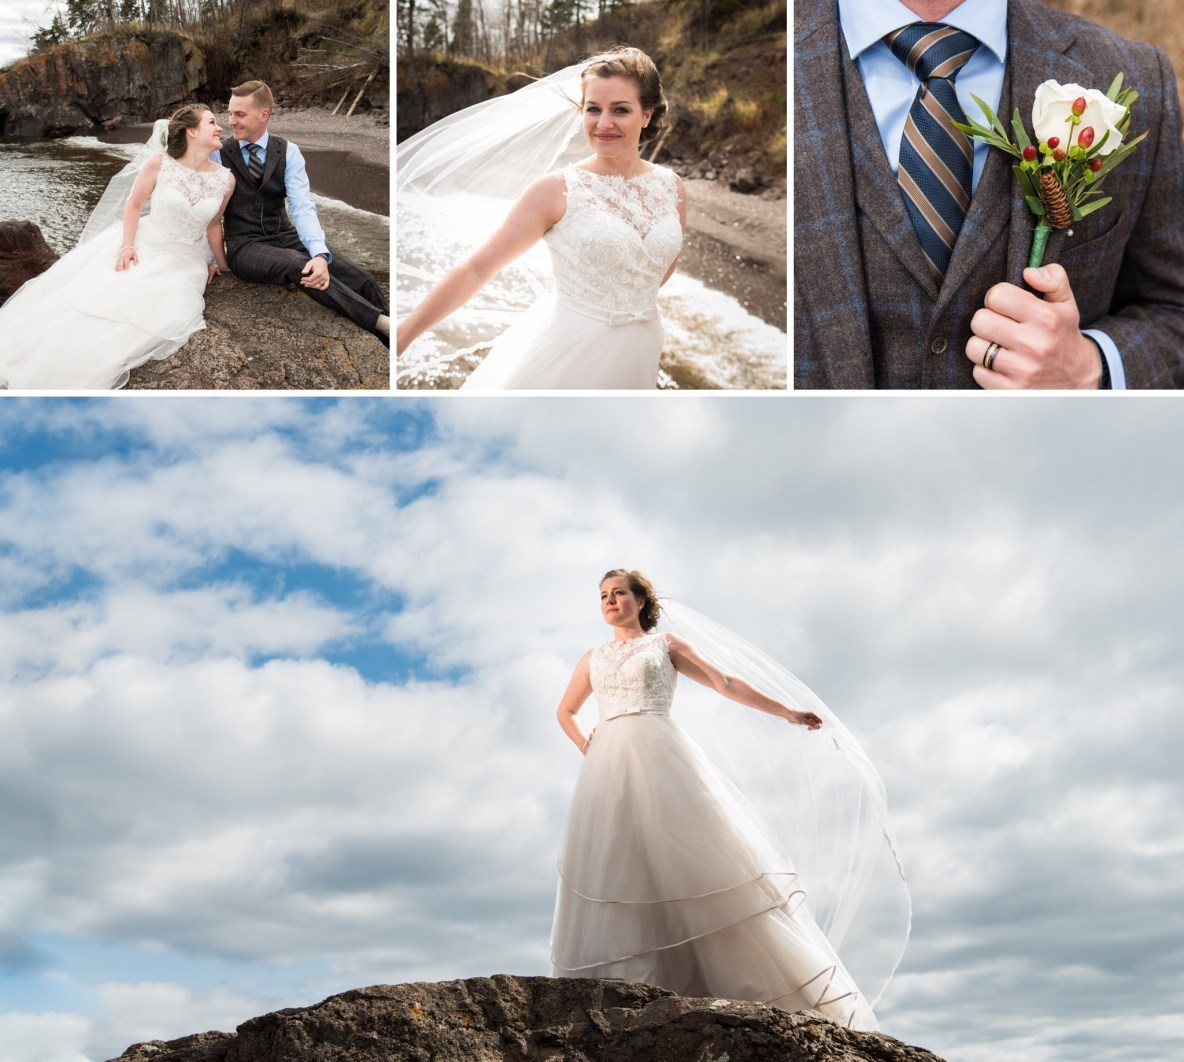 Photos of the bride and groom outside with river and blue sky in background.